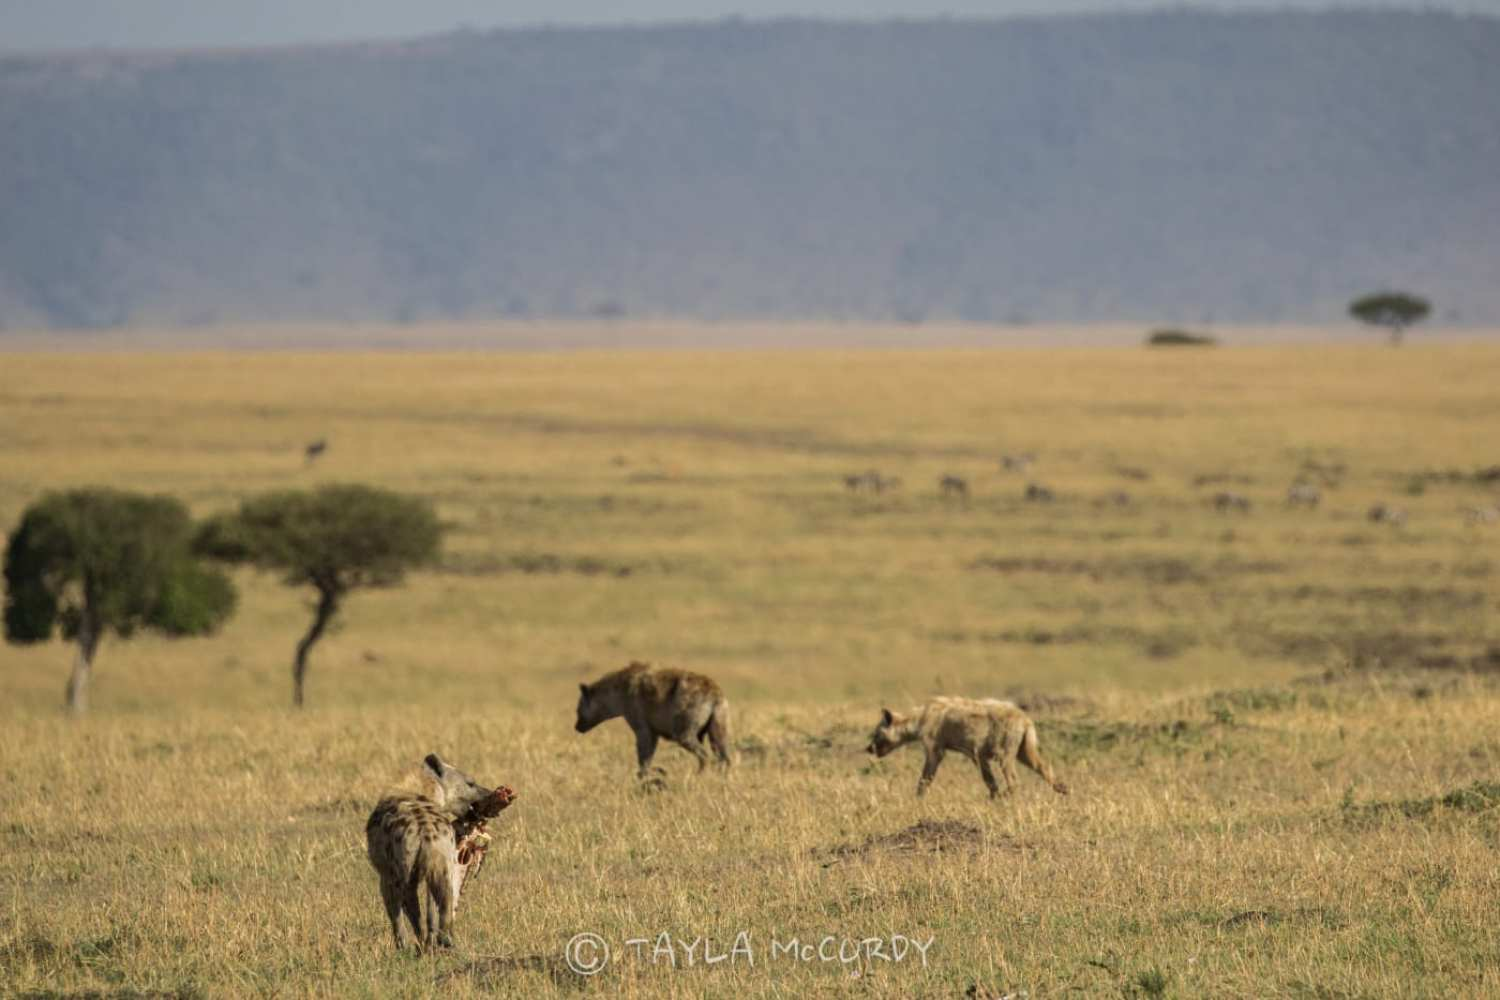 Hyenas in East Africa